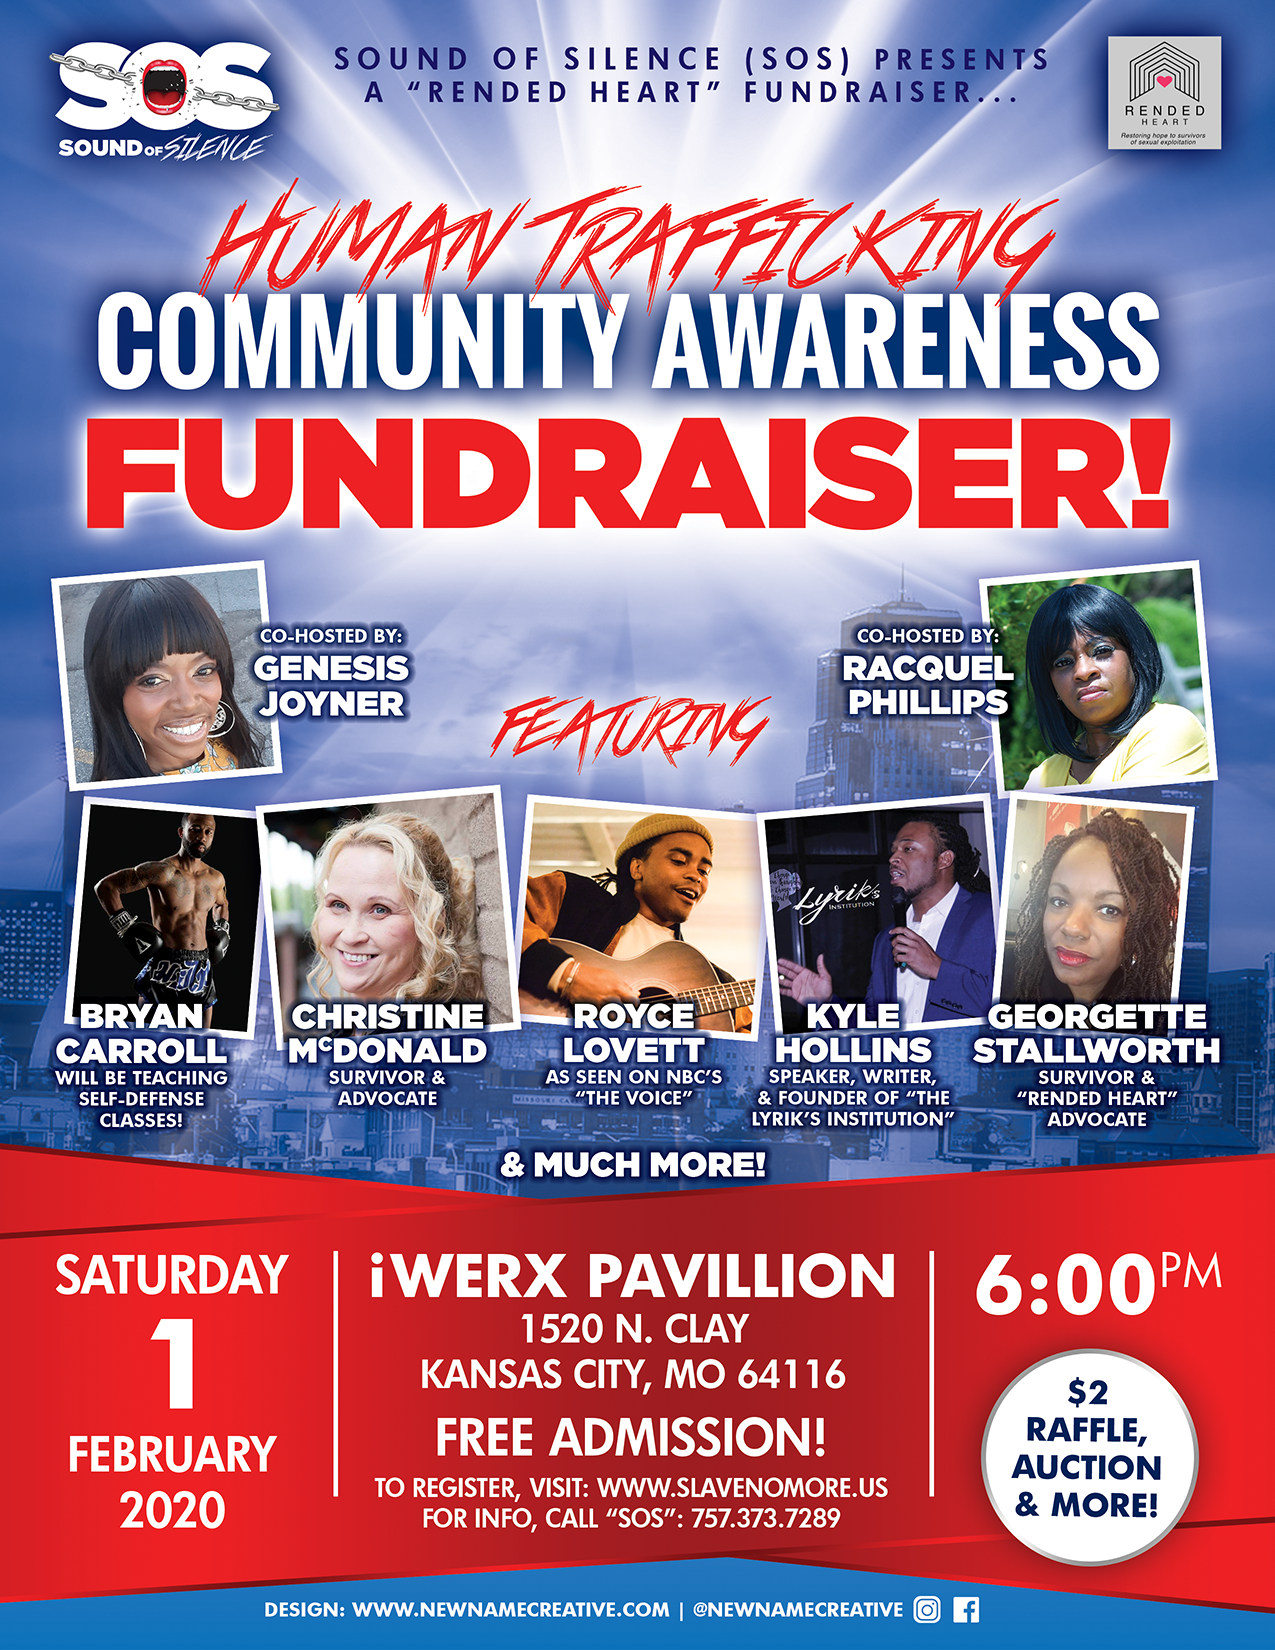 """Sounds of Silence Presents a """"Rended Heart Fundraiser"""""""